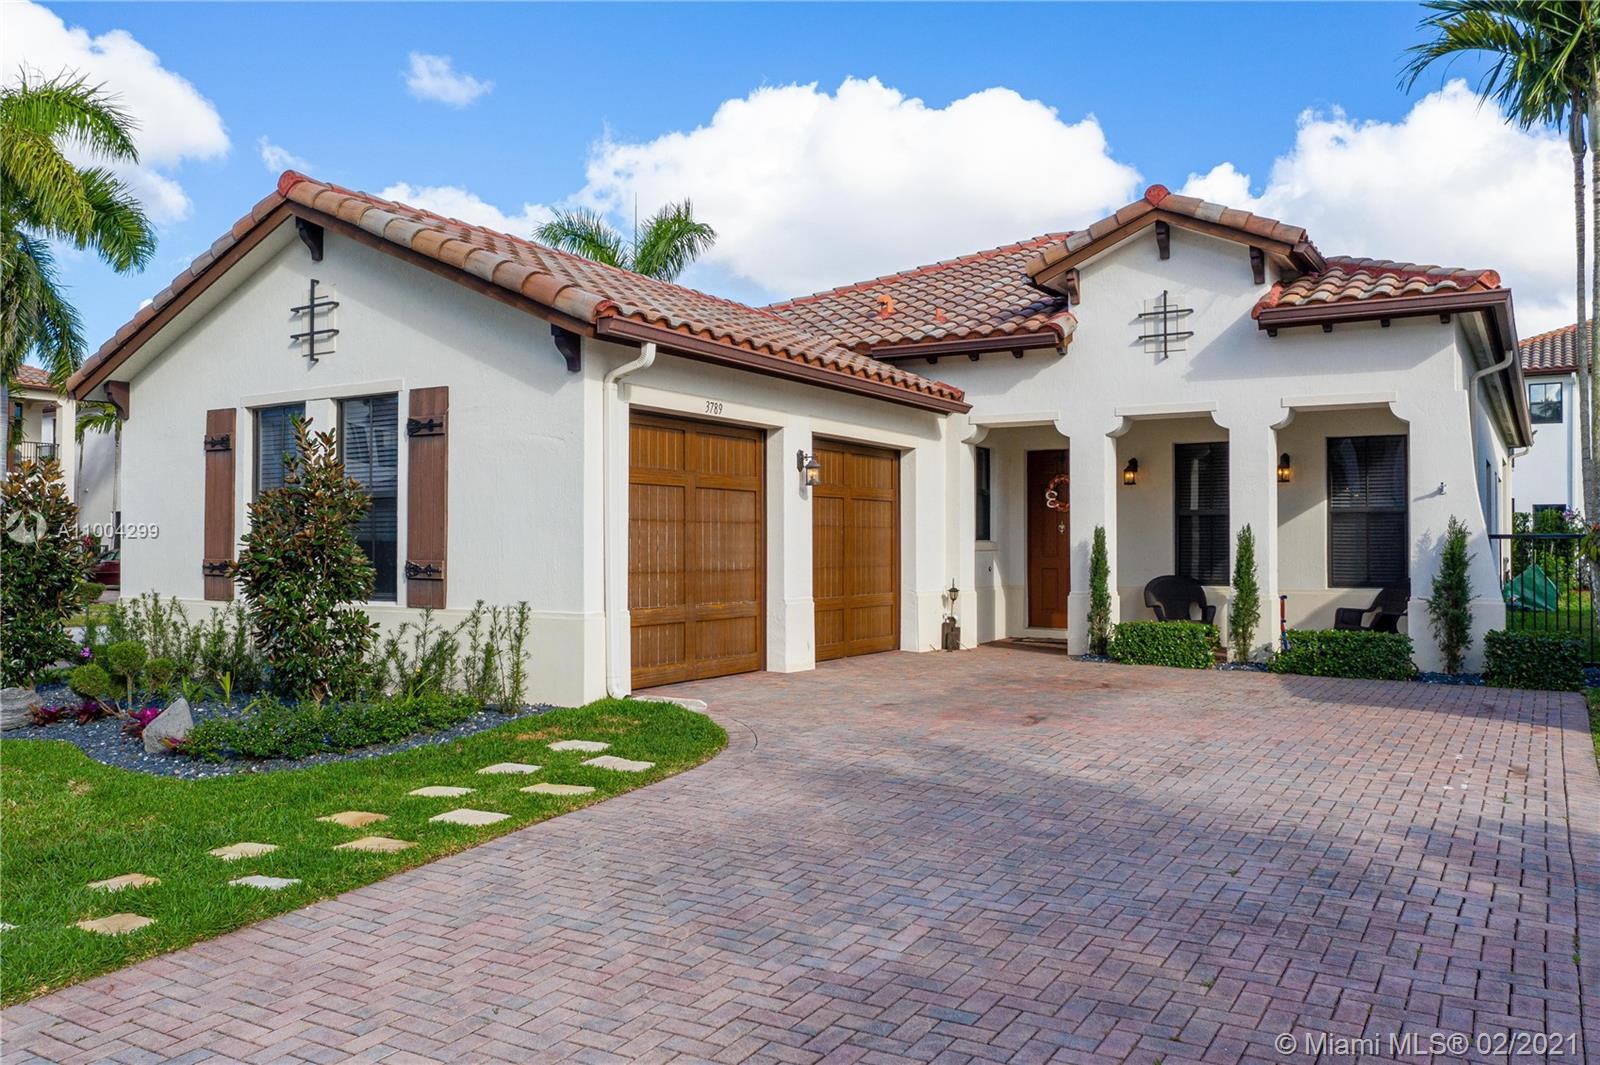 """Beautiful corner Home in one of Cooper City's newest communities Monterra!!  3 Bedrooms plus a large office/ 4th bedroom and 3 full Bathrooms!  Built in 2014! Open floor plan, High ceilings, impact hurricane windows, and 2 car garage. Large master bedroom with jacuzzi tub and 2 Walk-in closets in master bedroom.  Tons of natural light, amazing floor plan, custom flooring in bedrooms, and beautifully landscaped fully fenced backyard.  Zoned for Cooper City's top """"A"""" rated schools!!  Association only $110 per YEAR!! Beautiful clubhouse with pool, gym, tennis, and basketball courts.  Will not last long!!!  Open House Saturday and Sunday 12-3:30pm."""